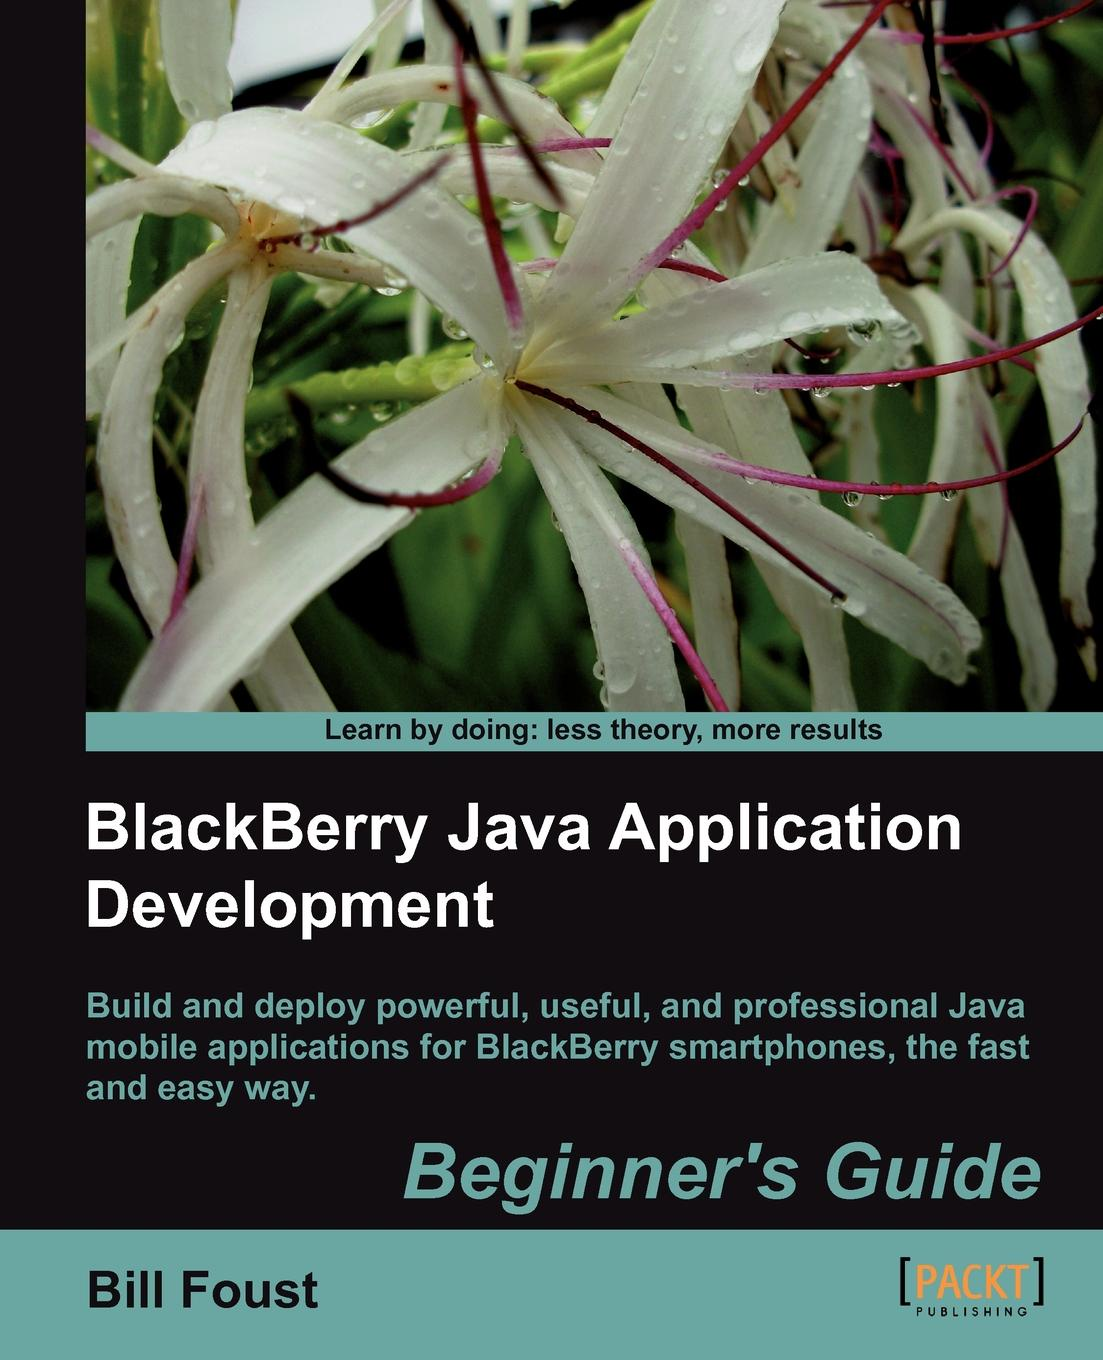 Bill Foust Blackberry SDK 4.5 Java Application Development. Beginner's Guide ajay vohra deepak vohra pro xml development with java technology